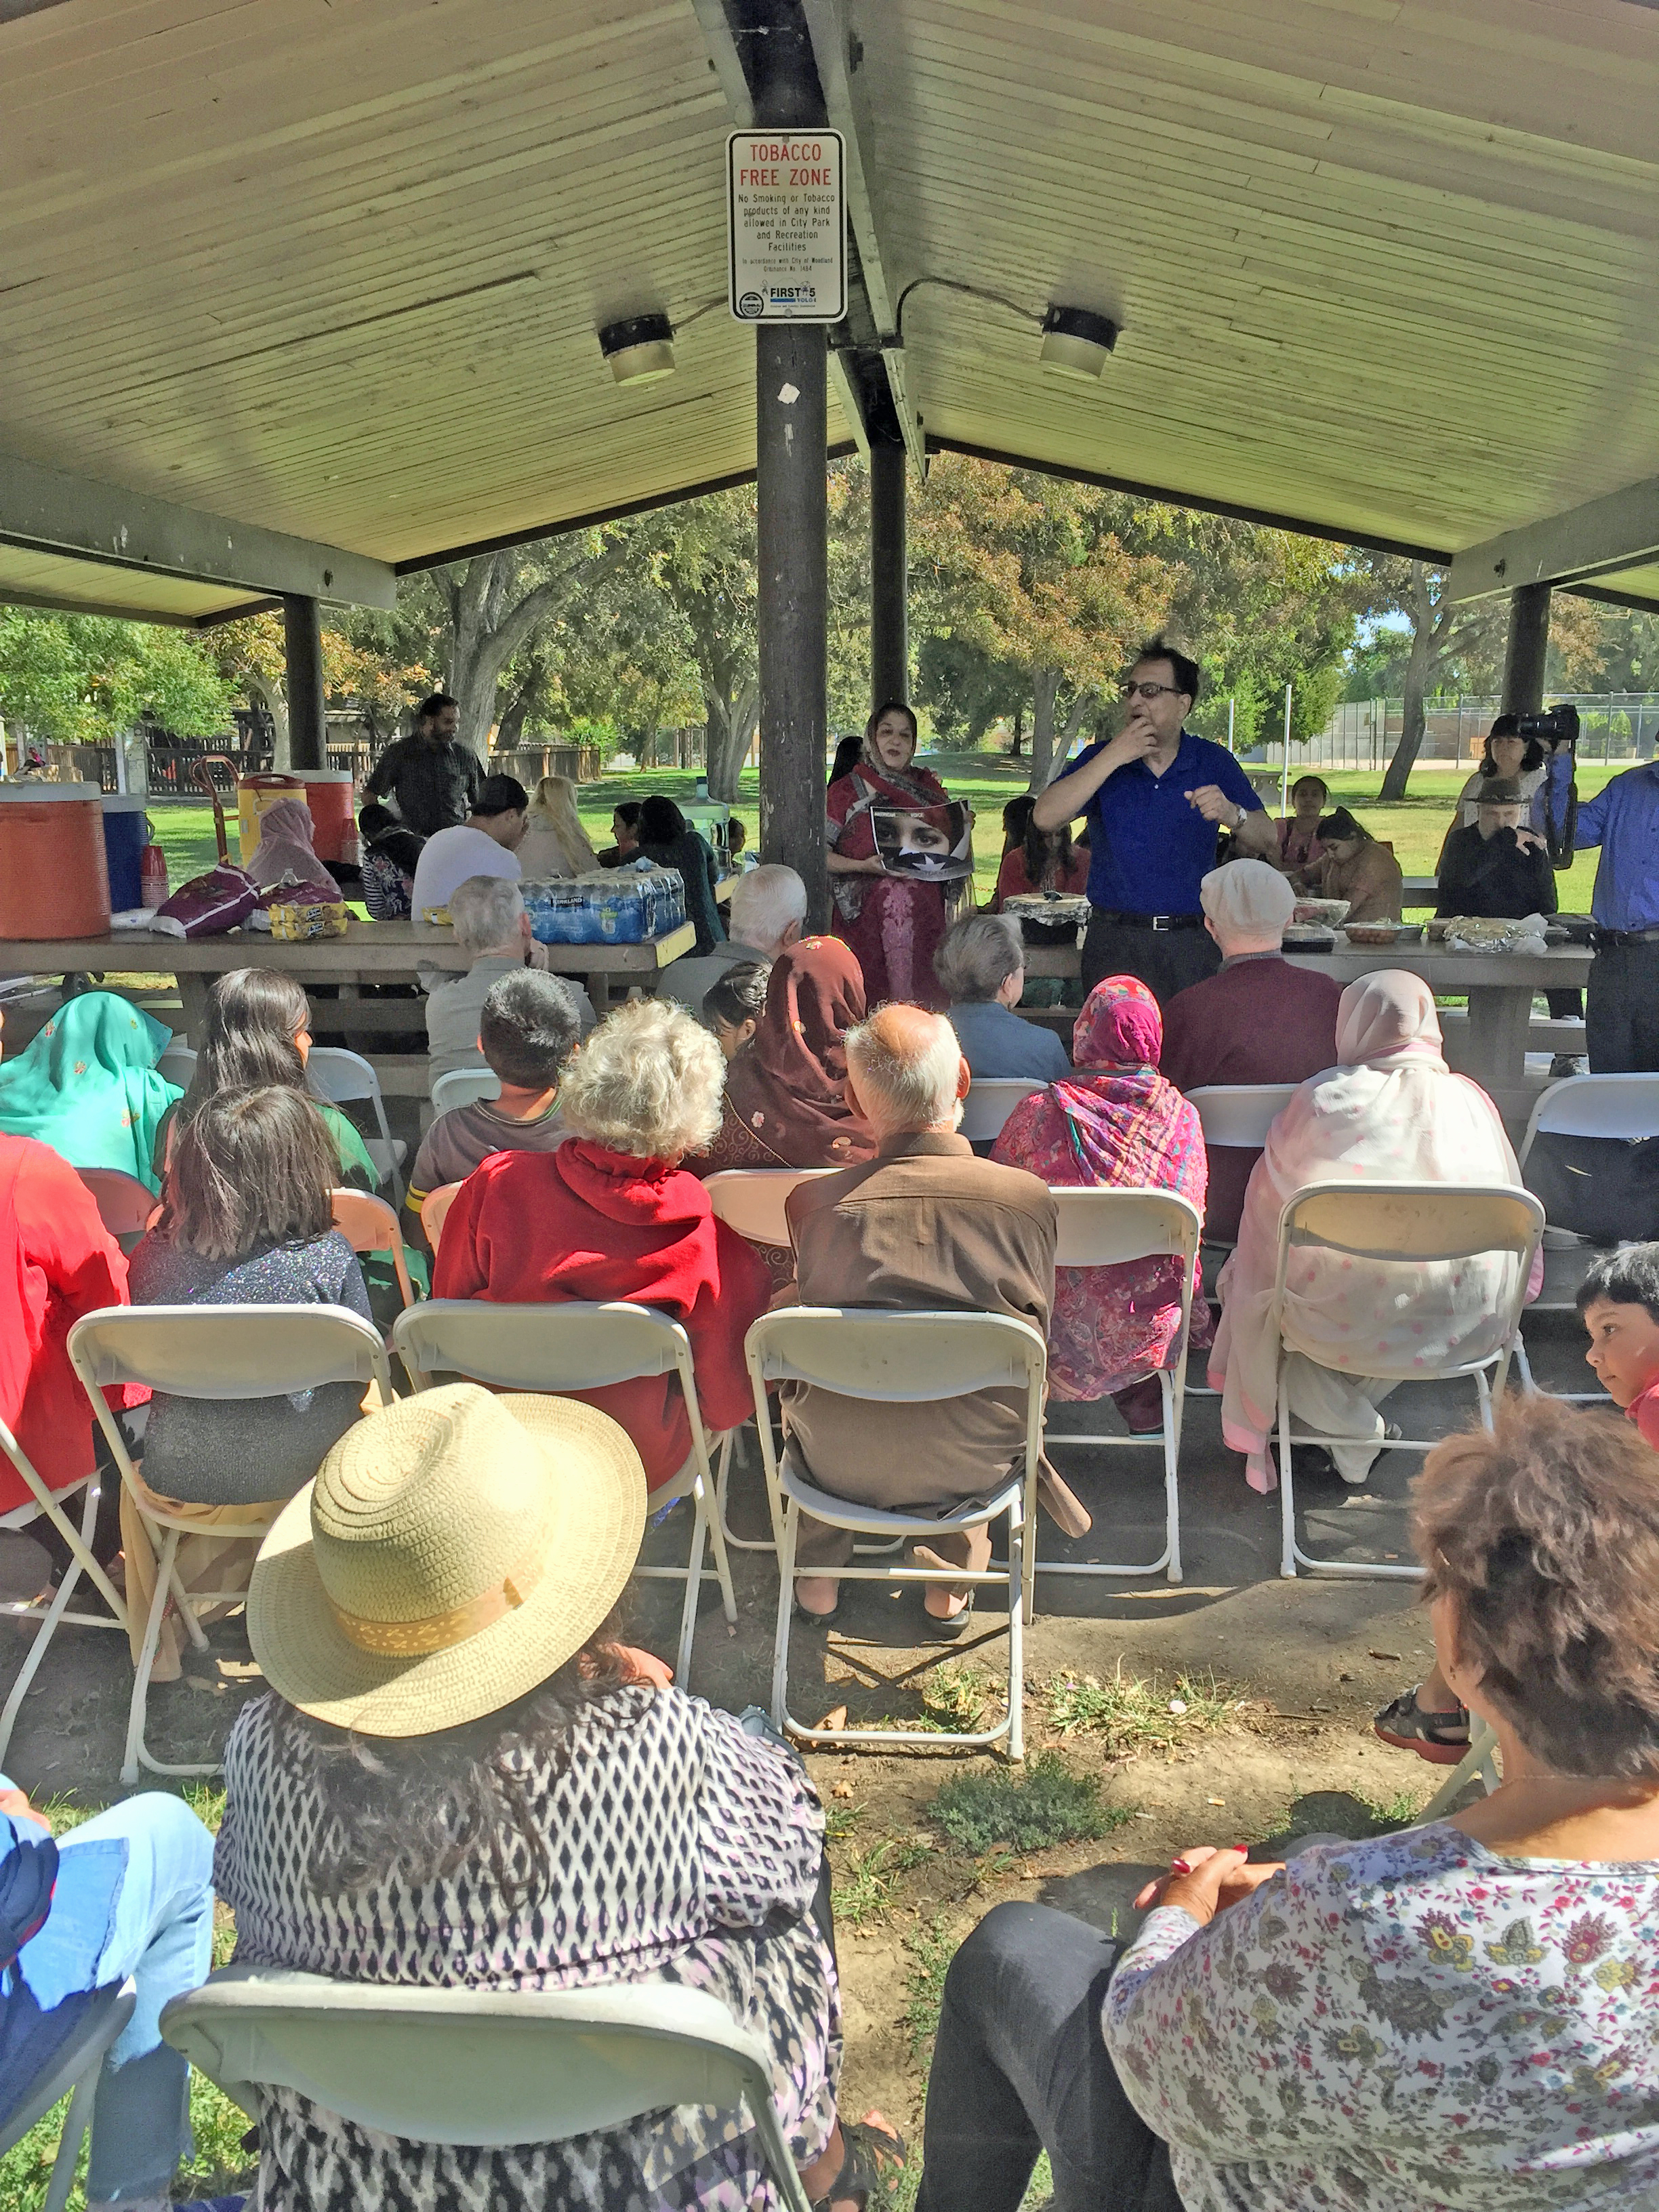 Annual Interfaith Peace Celebration was held on September 23, 2017 at Ferns Park in Woodland.